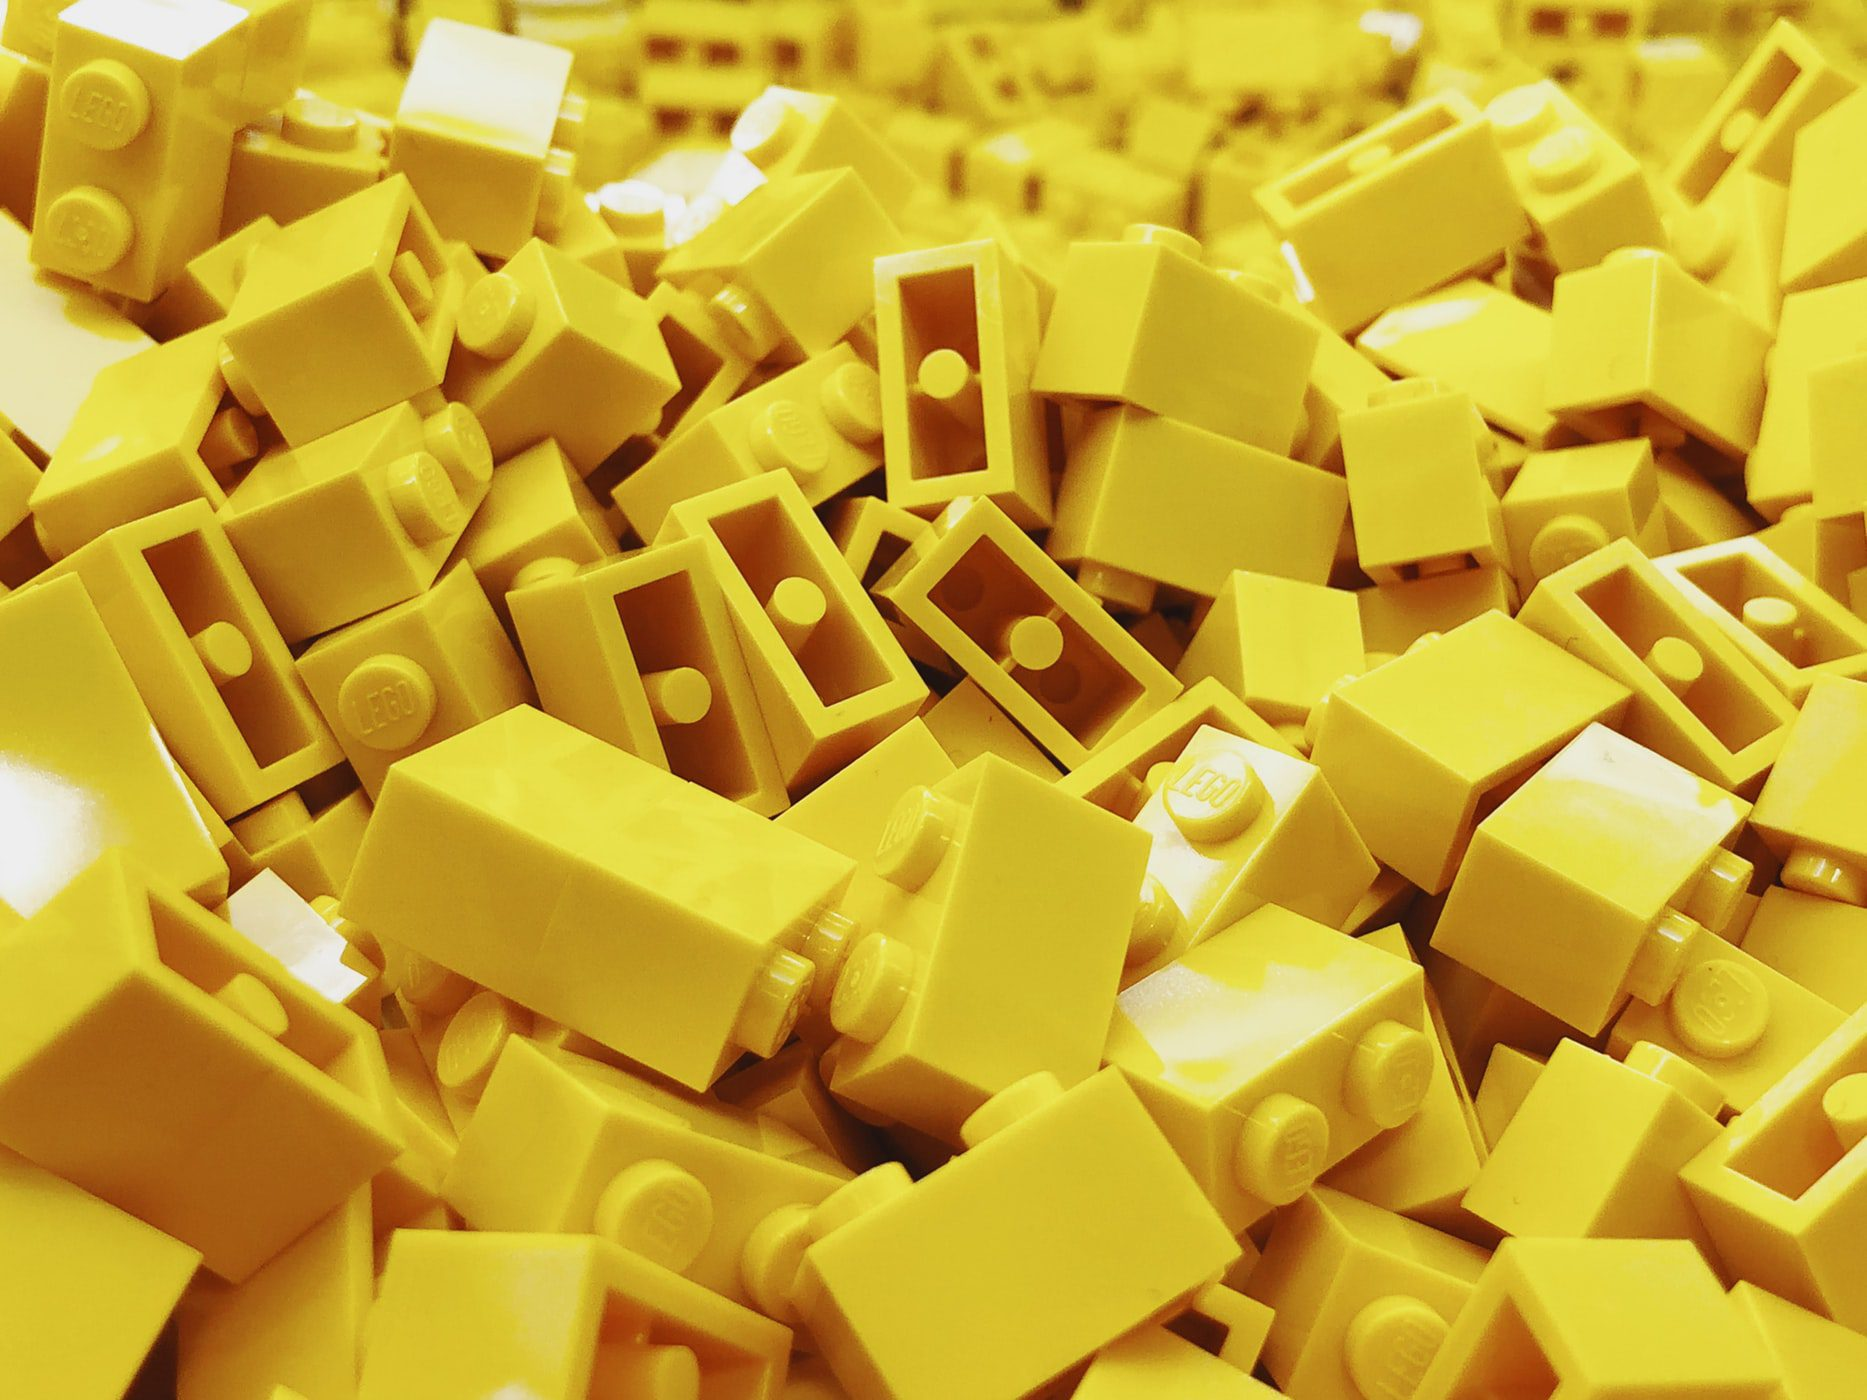 ABS Material_Lego Bricks